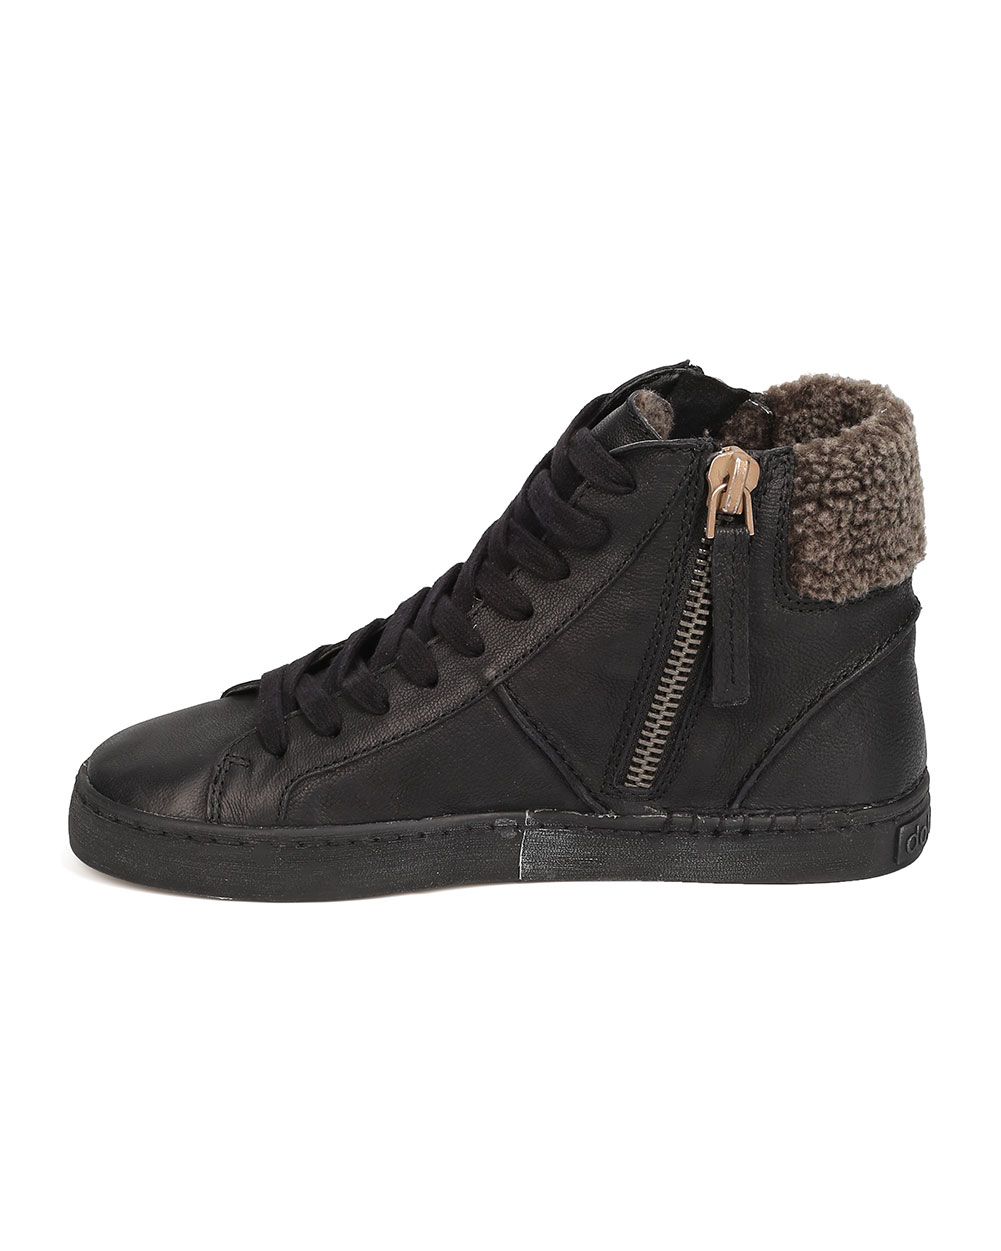 Details about  /New Women Dolce Vita Zola Leather Lace Up Zippered Shearling Lined Sneaker